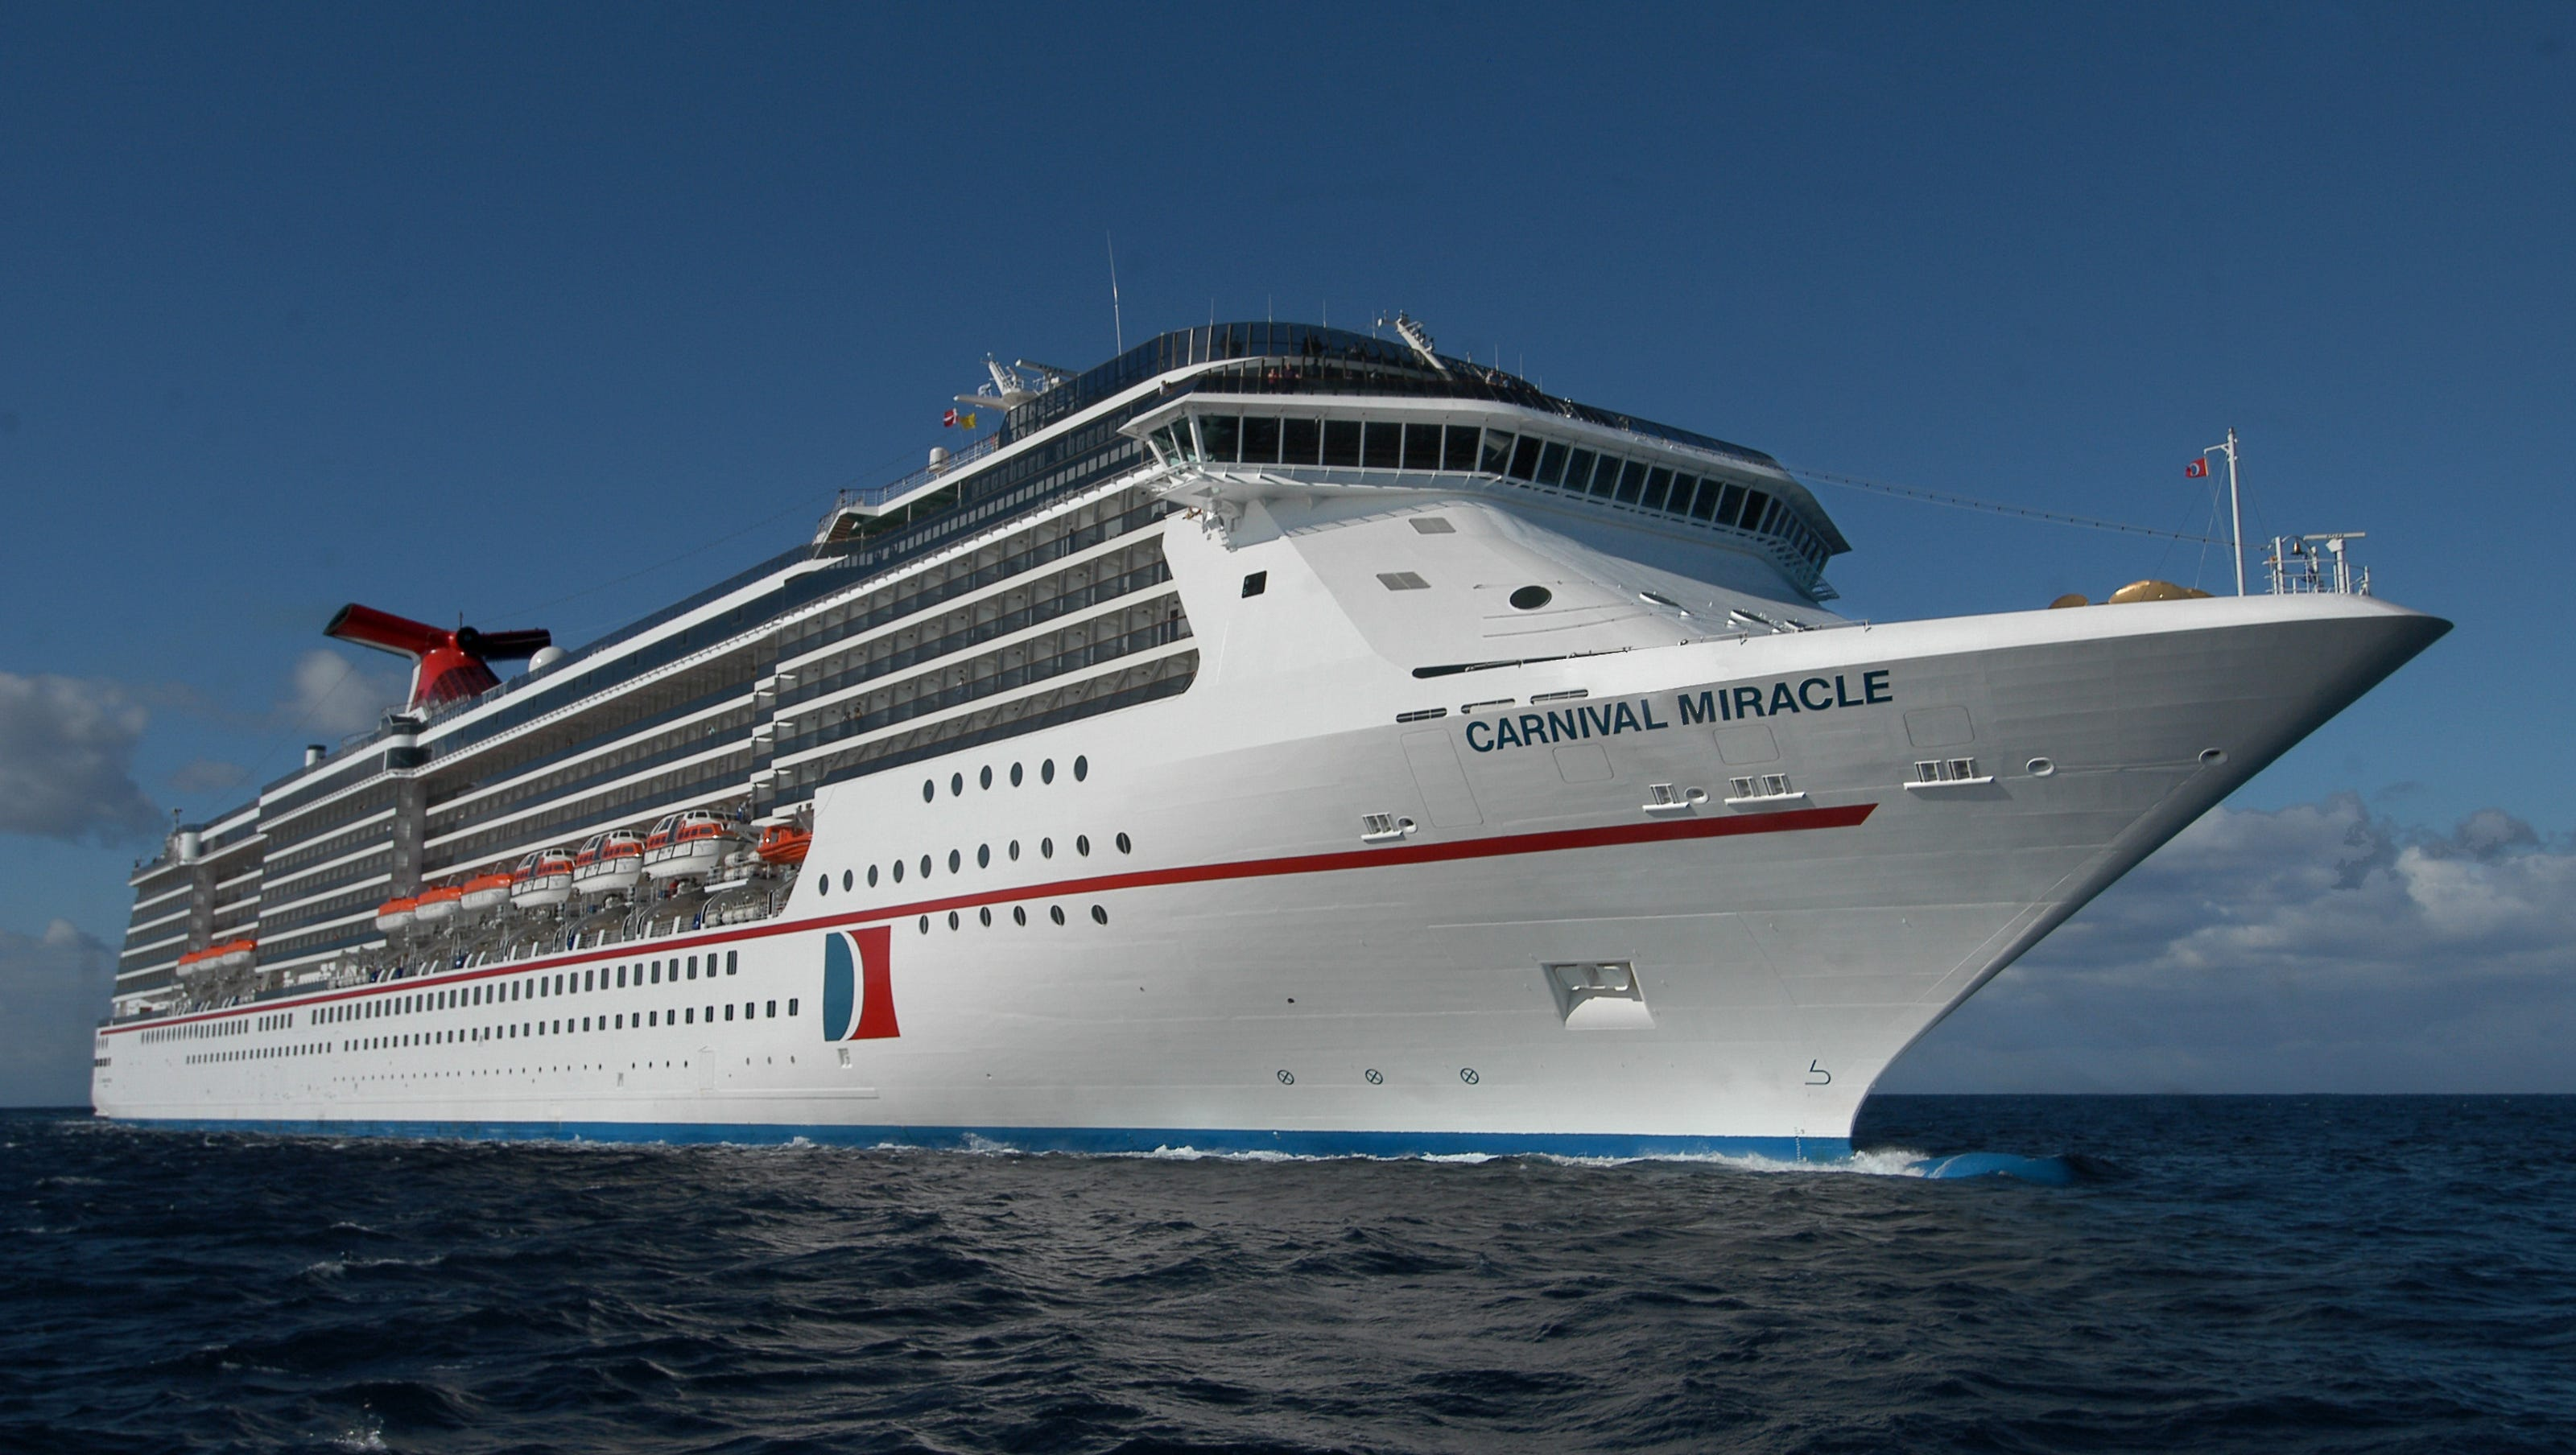 August route roundup: Where cruise lines are adding sailings (usatoday.com)